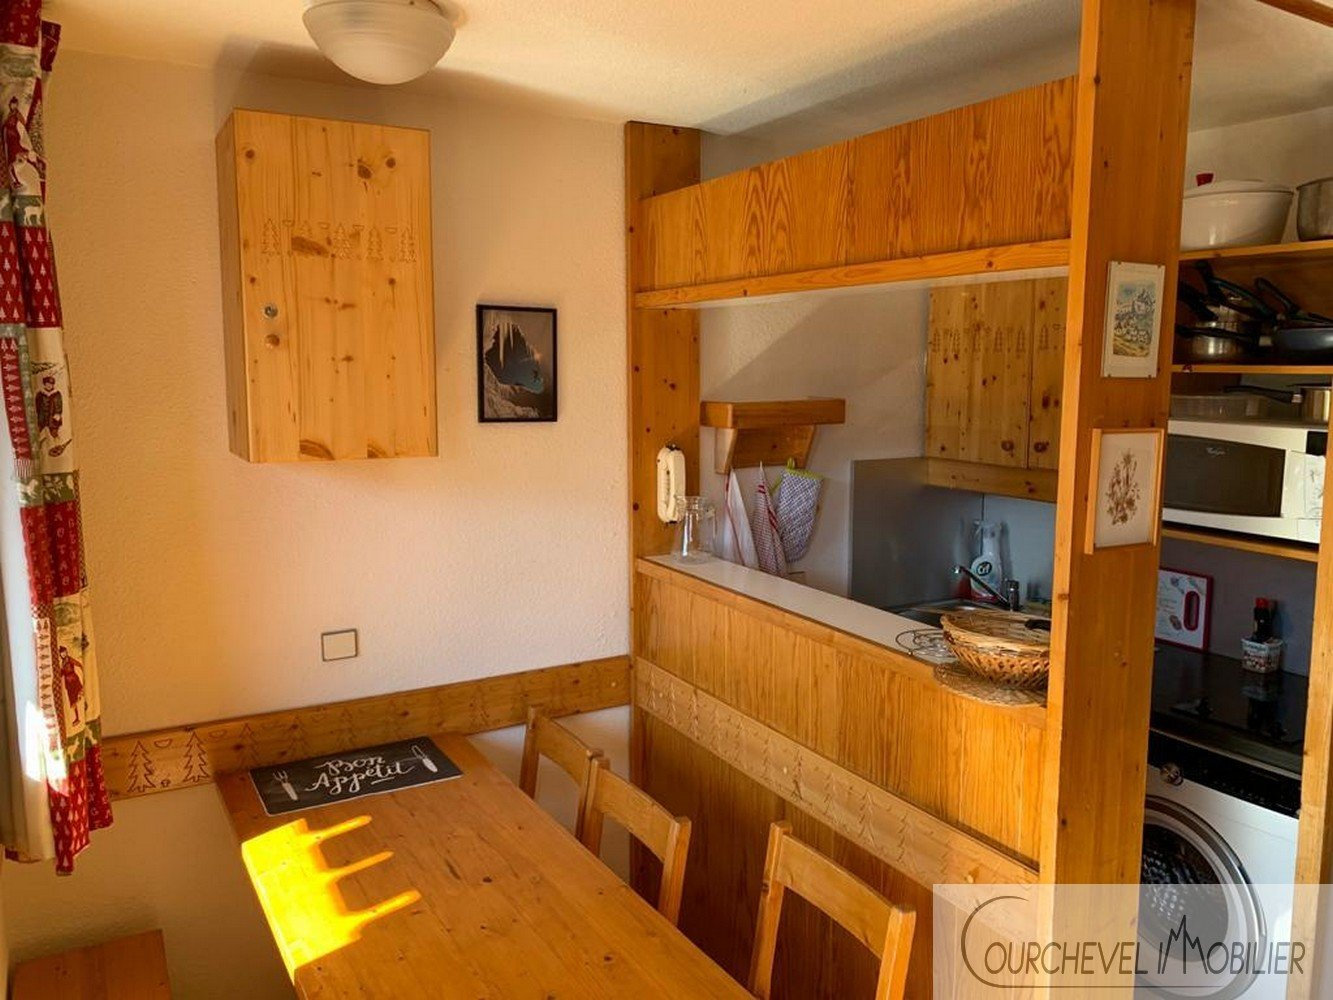 Huur Appartement - Courchevel